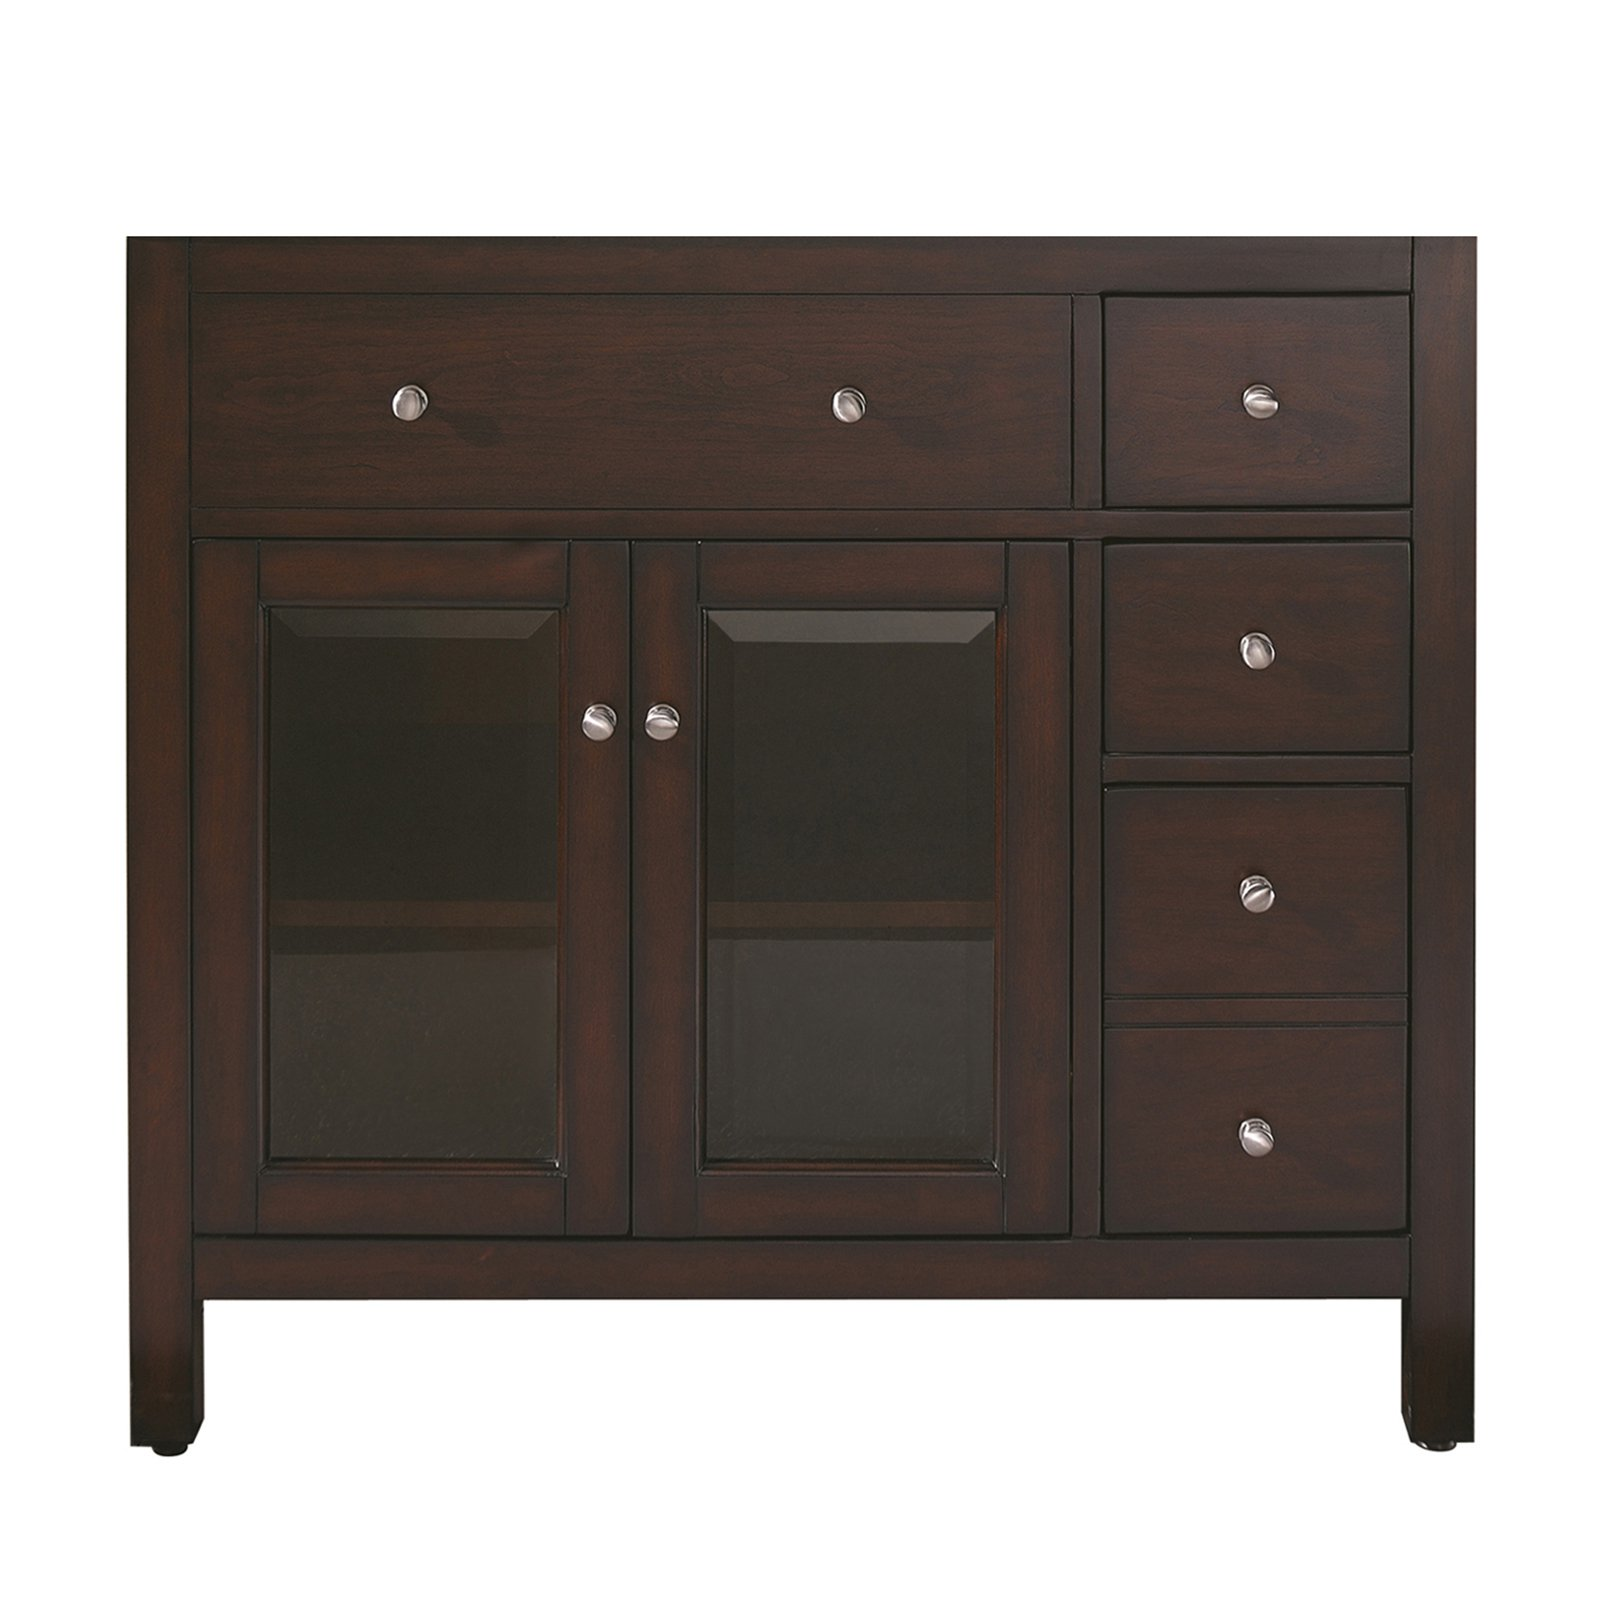 "Avanity LEXINGTON-V36-LE Lexington 36"" Floor-Standing Vanity Cabinet"